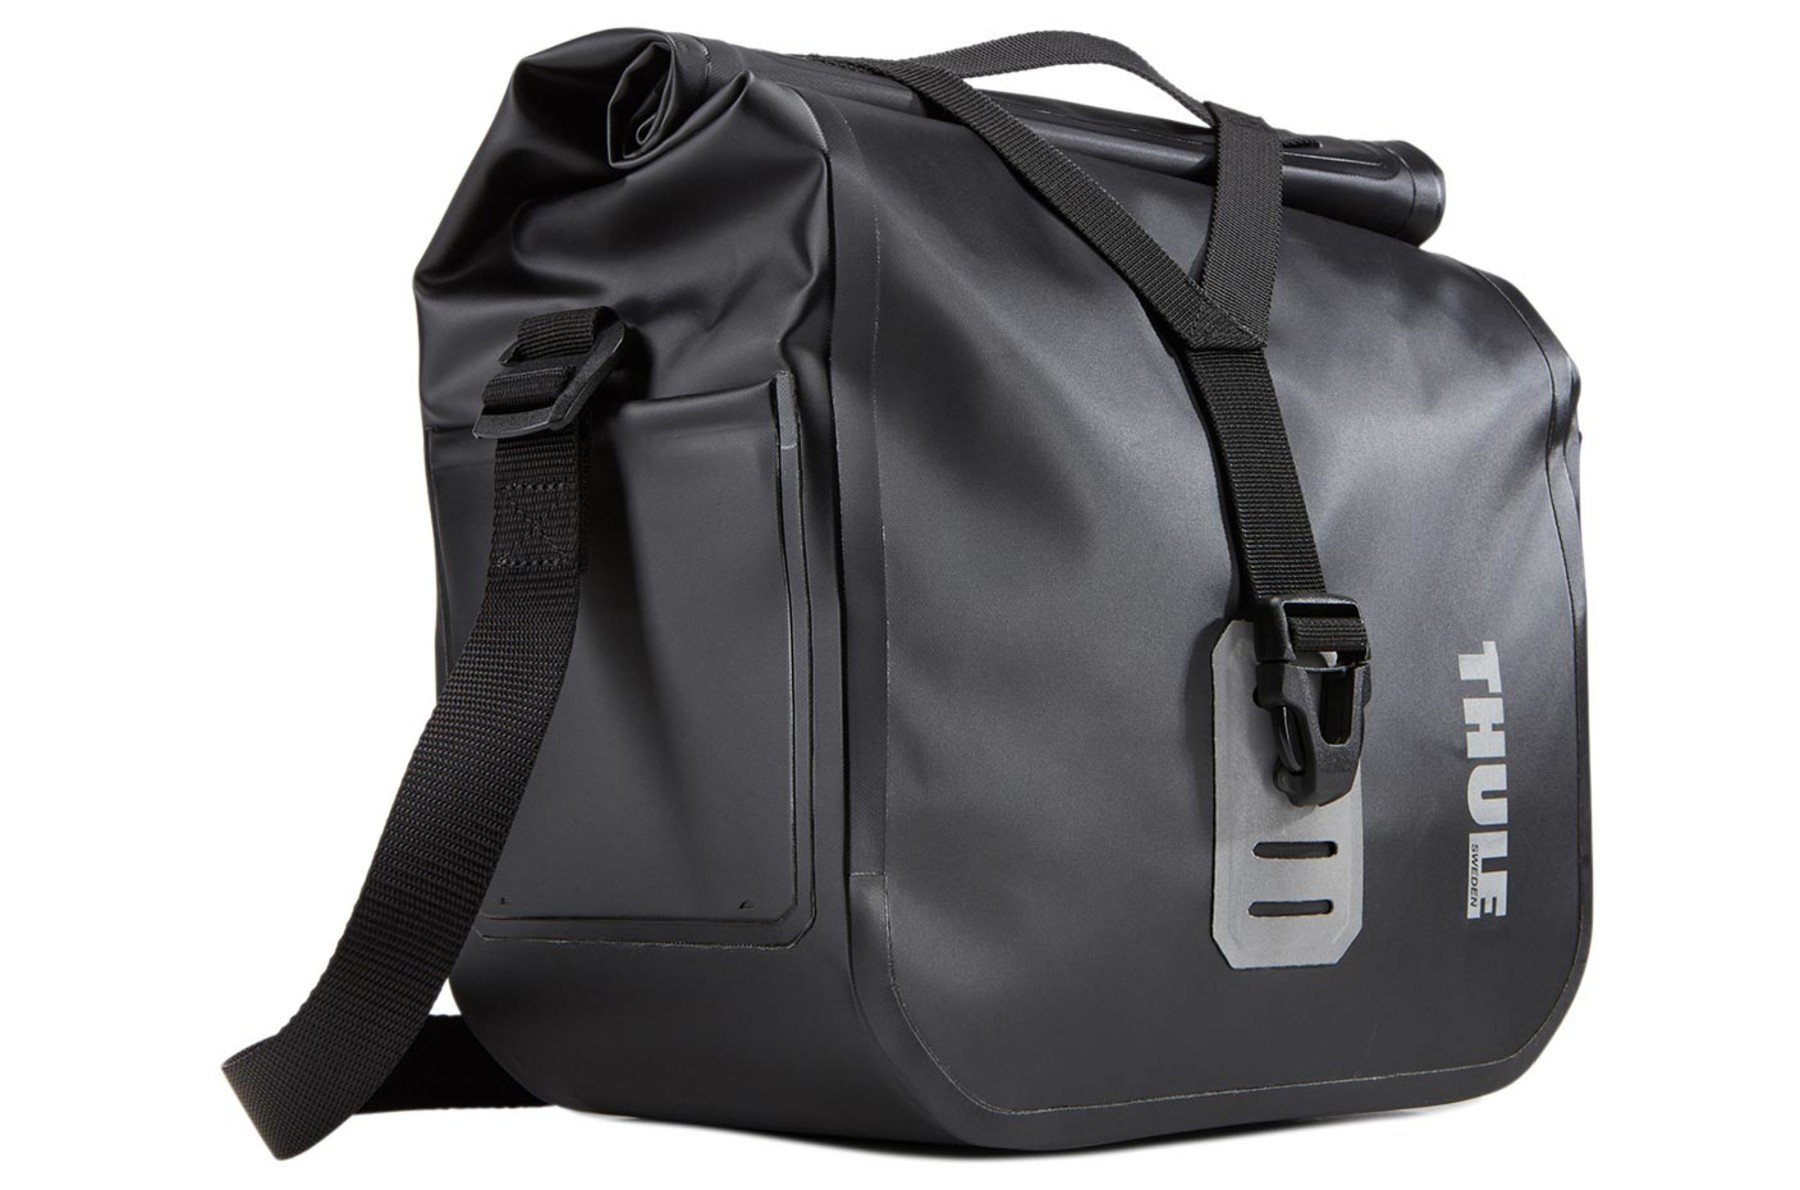 THULE_SHIELD_HANDLEBAR_BAG_01